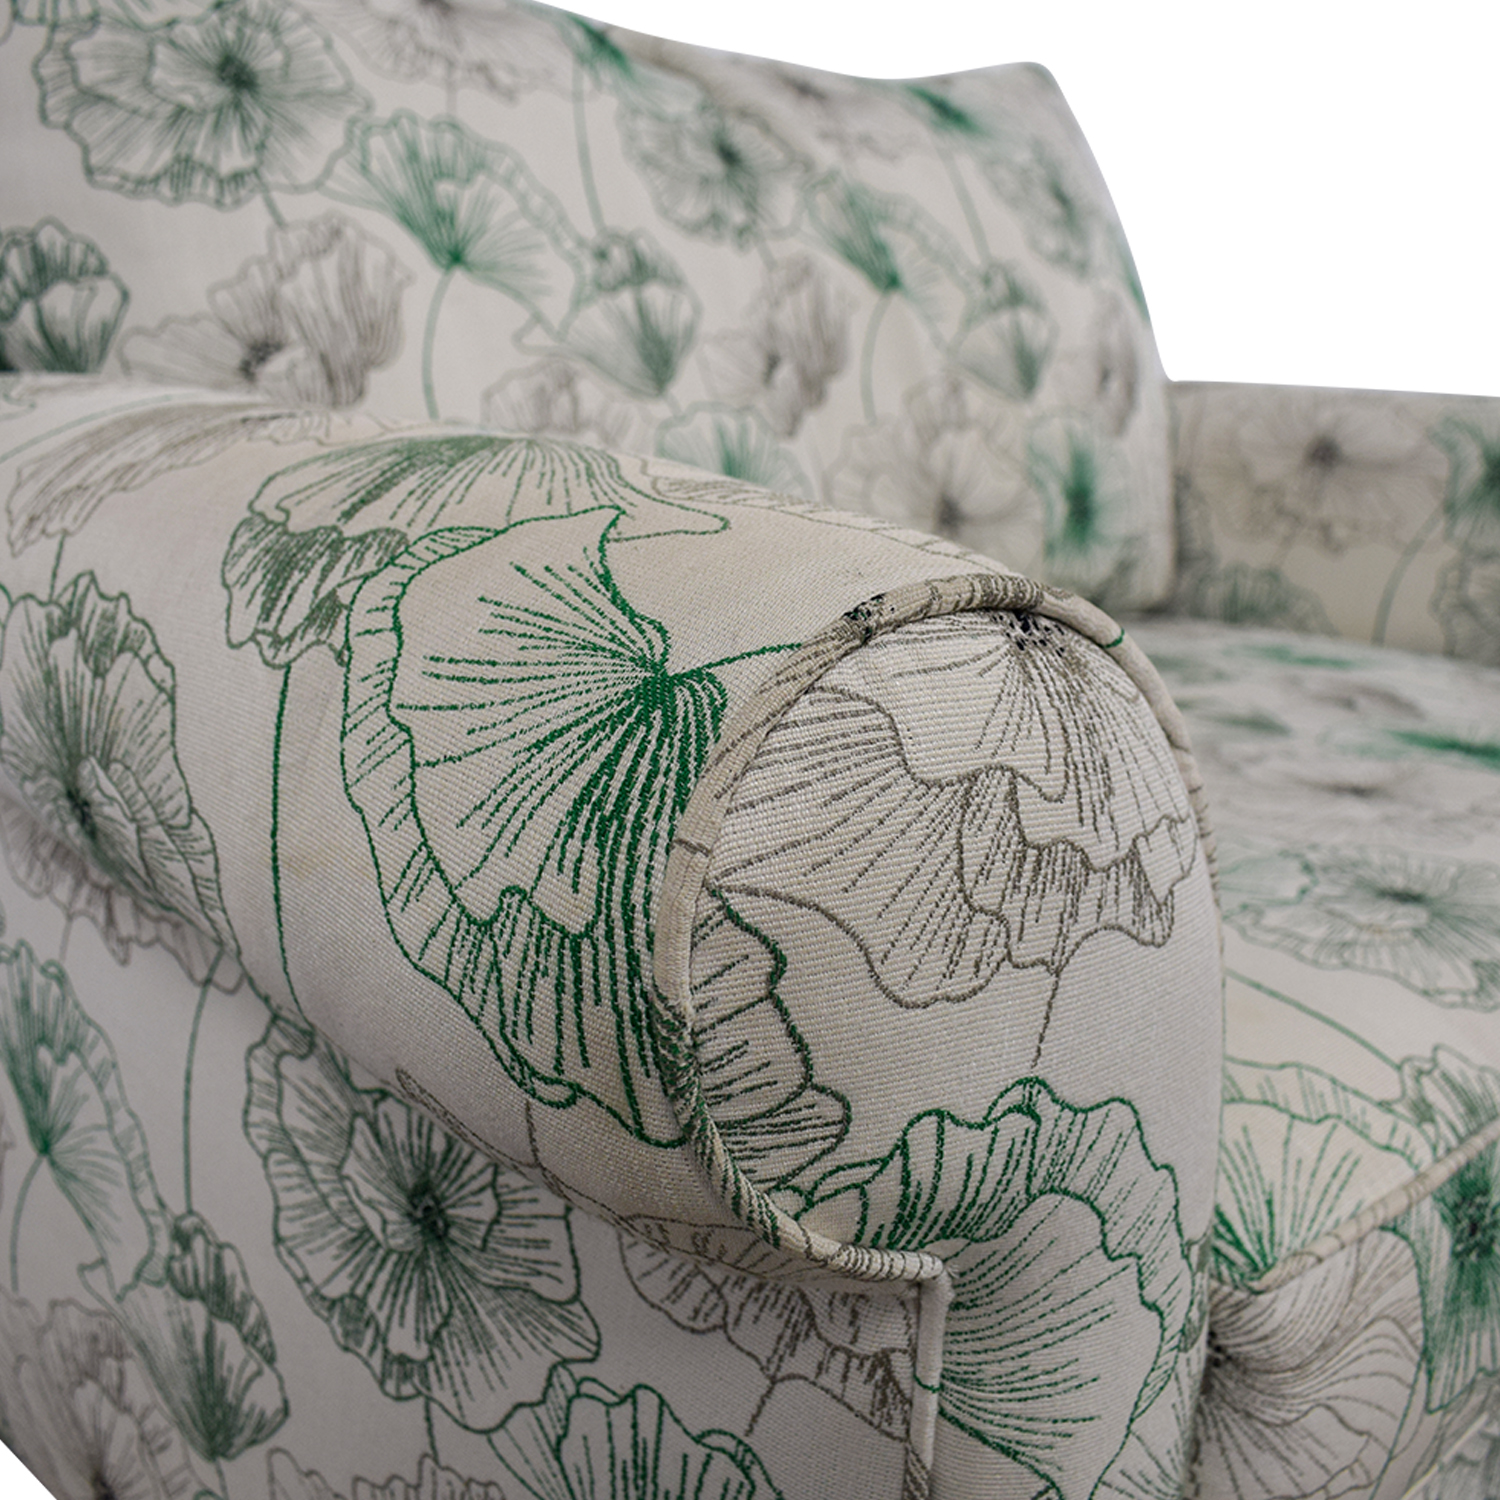 American Signature American Signature White and Green Floral  Loveseat dimensions